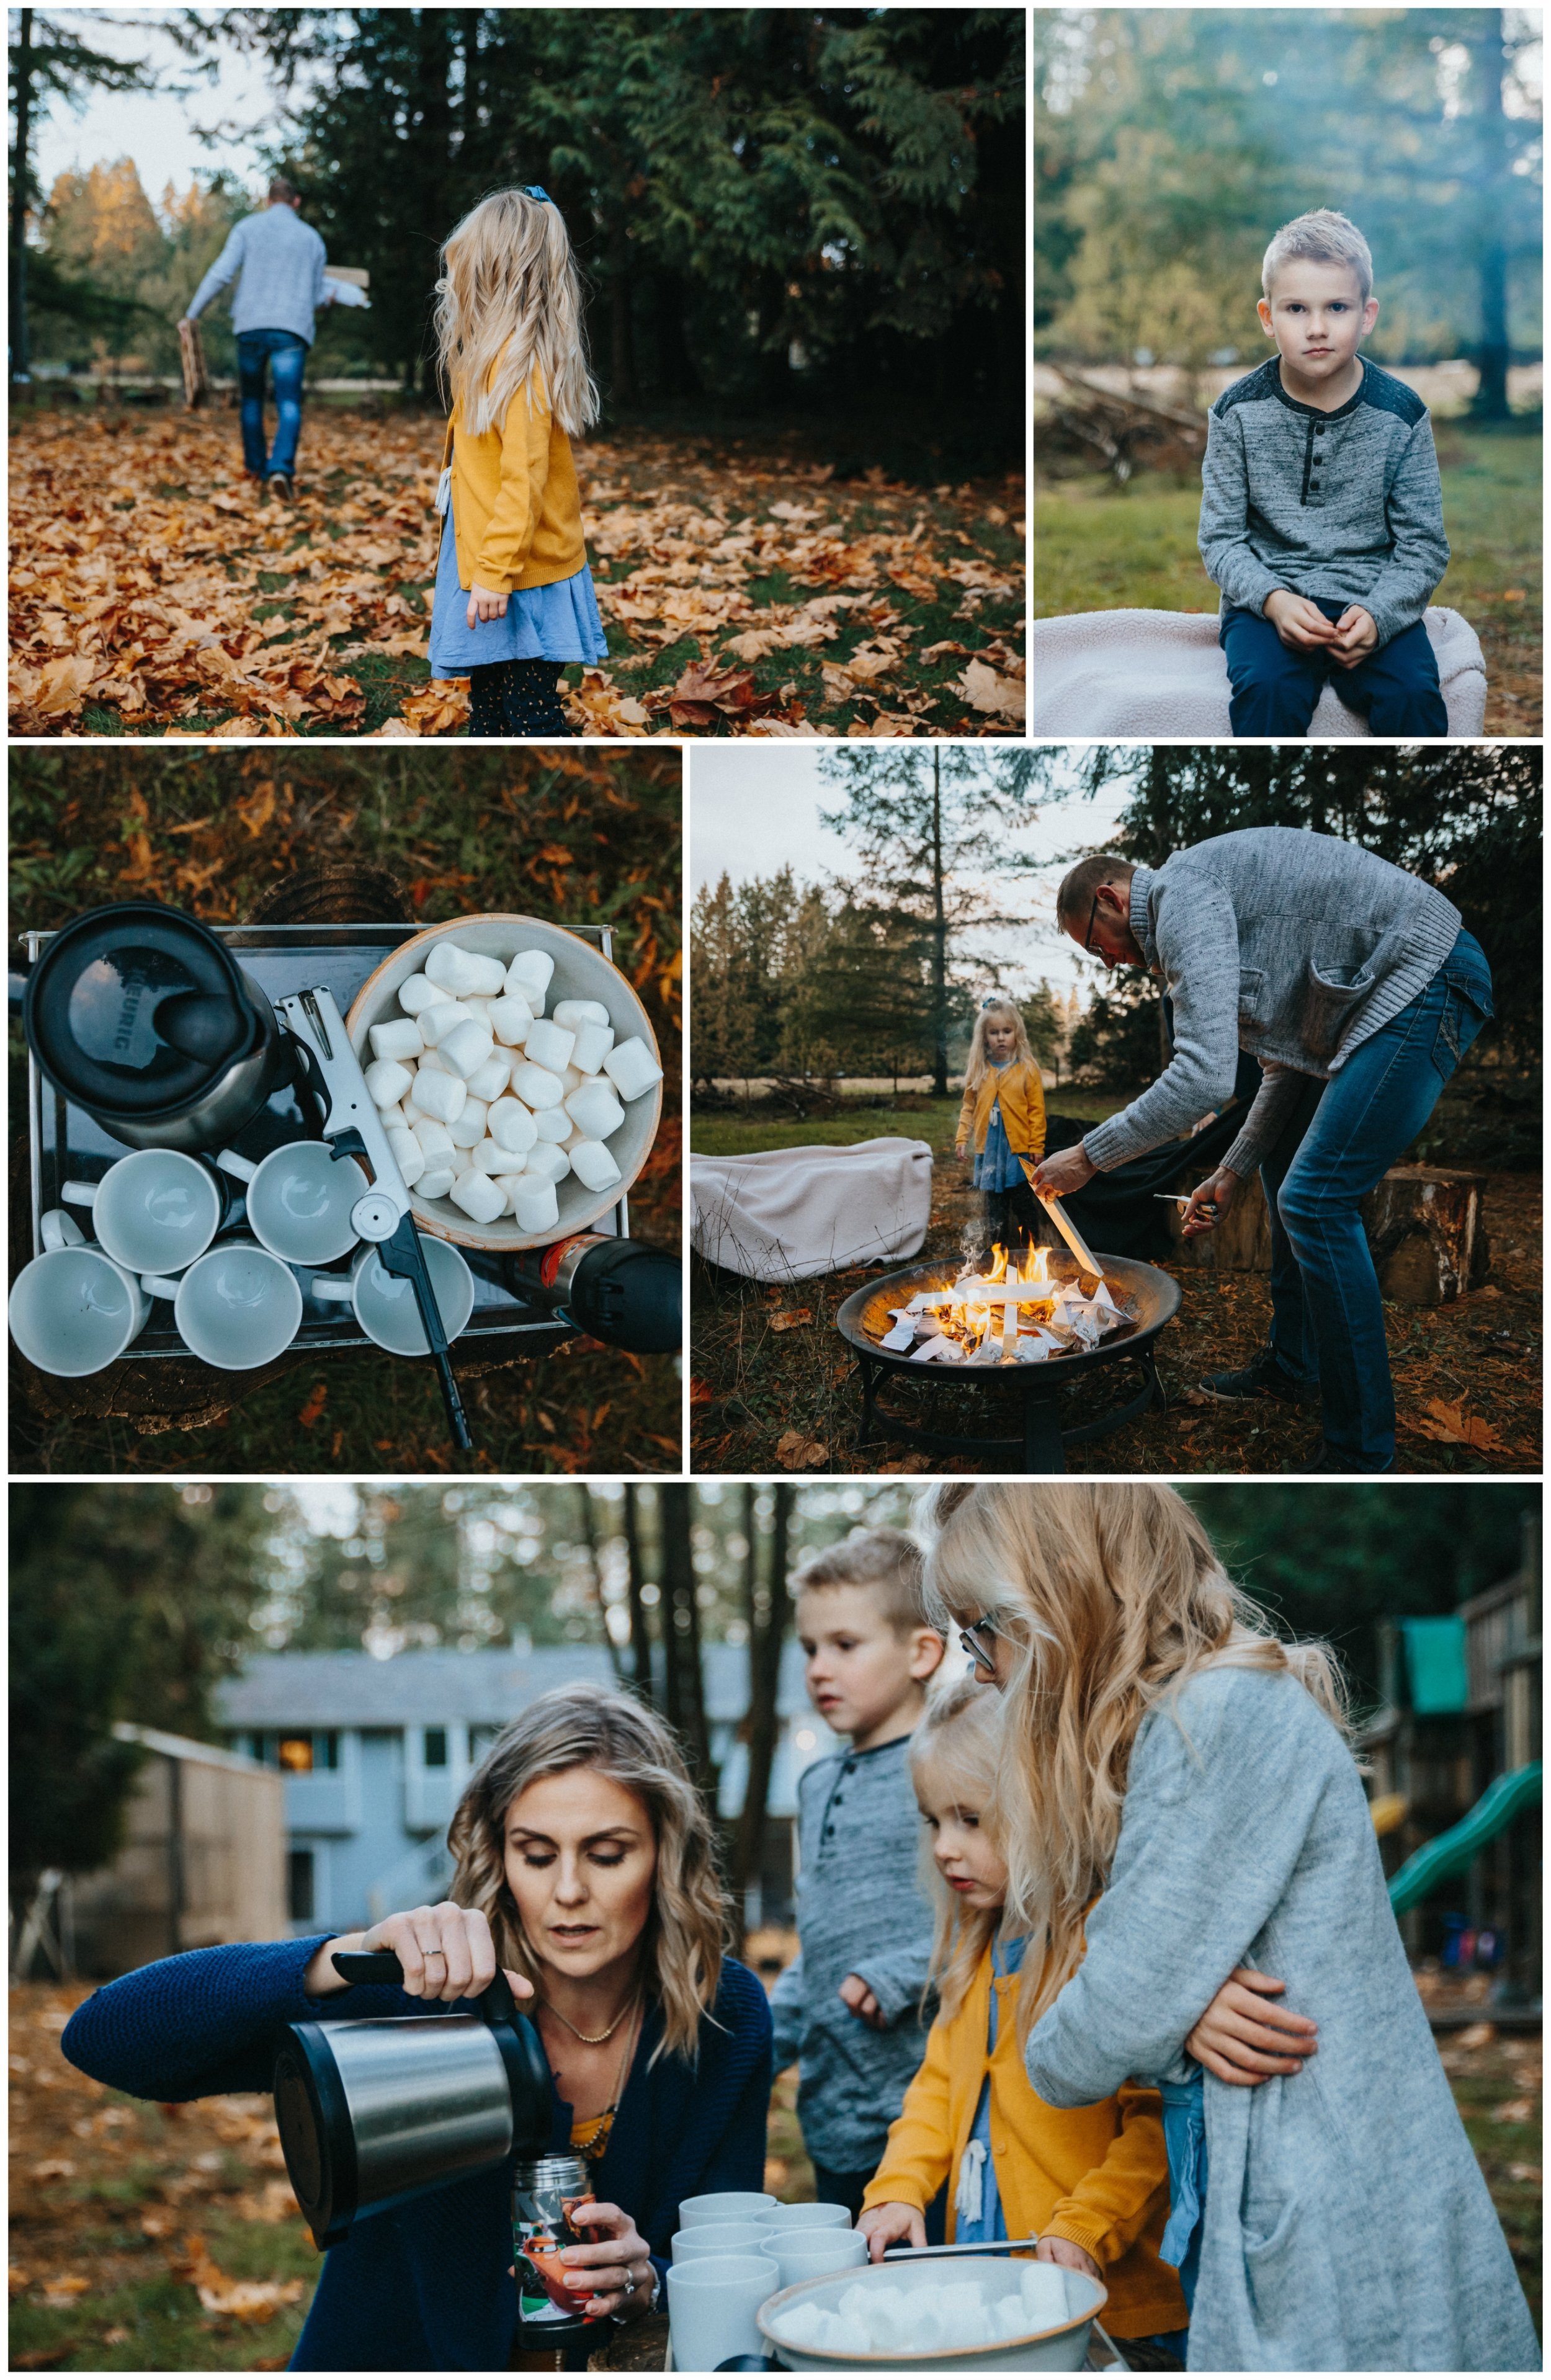 Hot chocolate, marshmallow, building fire Backyard Family Roasting Marshmallows, 4 kids, navy blue, mustard yellow, jean . Real moments, real memories. sticky fingers, documentary lifestyle photography by Mimsical photography, Fraser Valley, British Columbia, Langley, Vancouver.